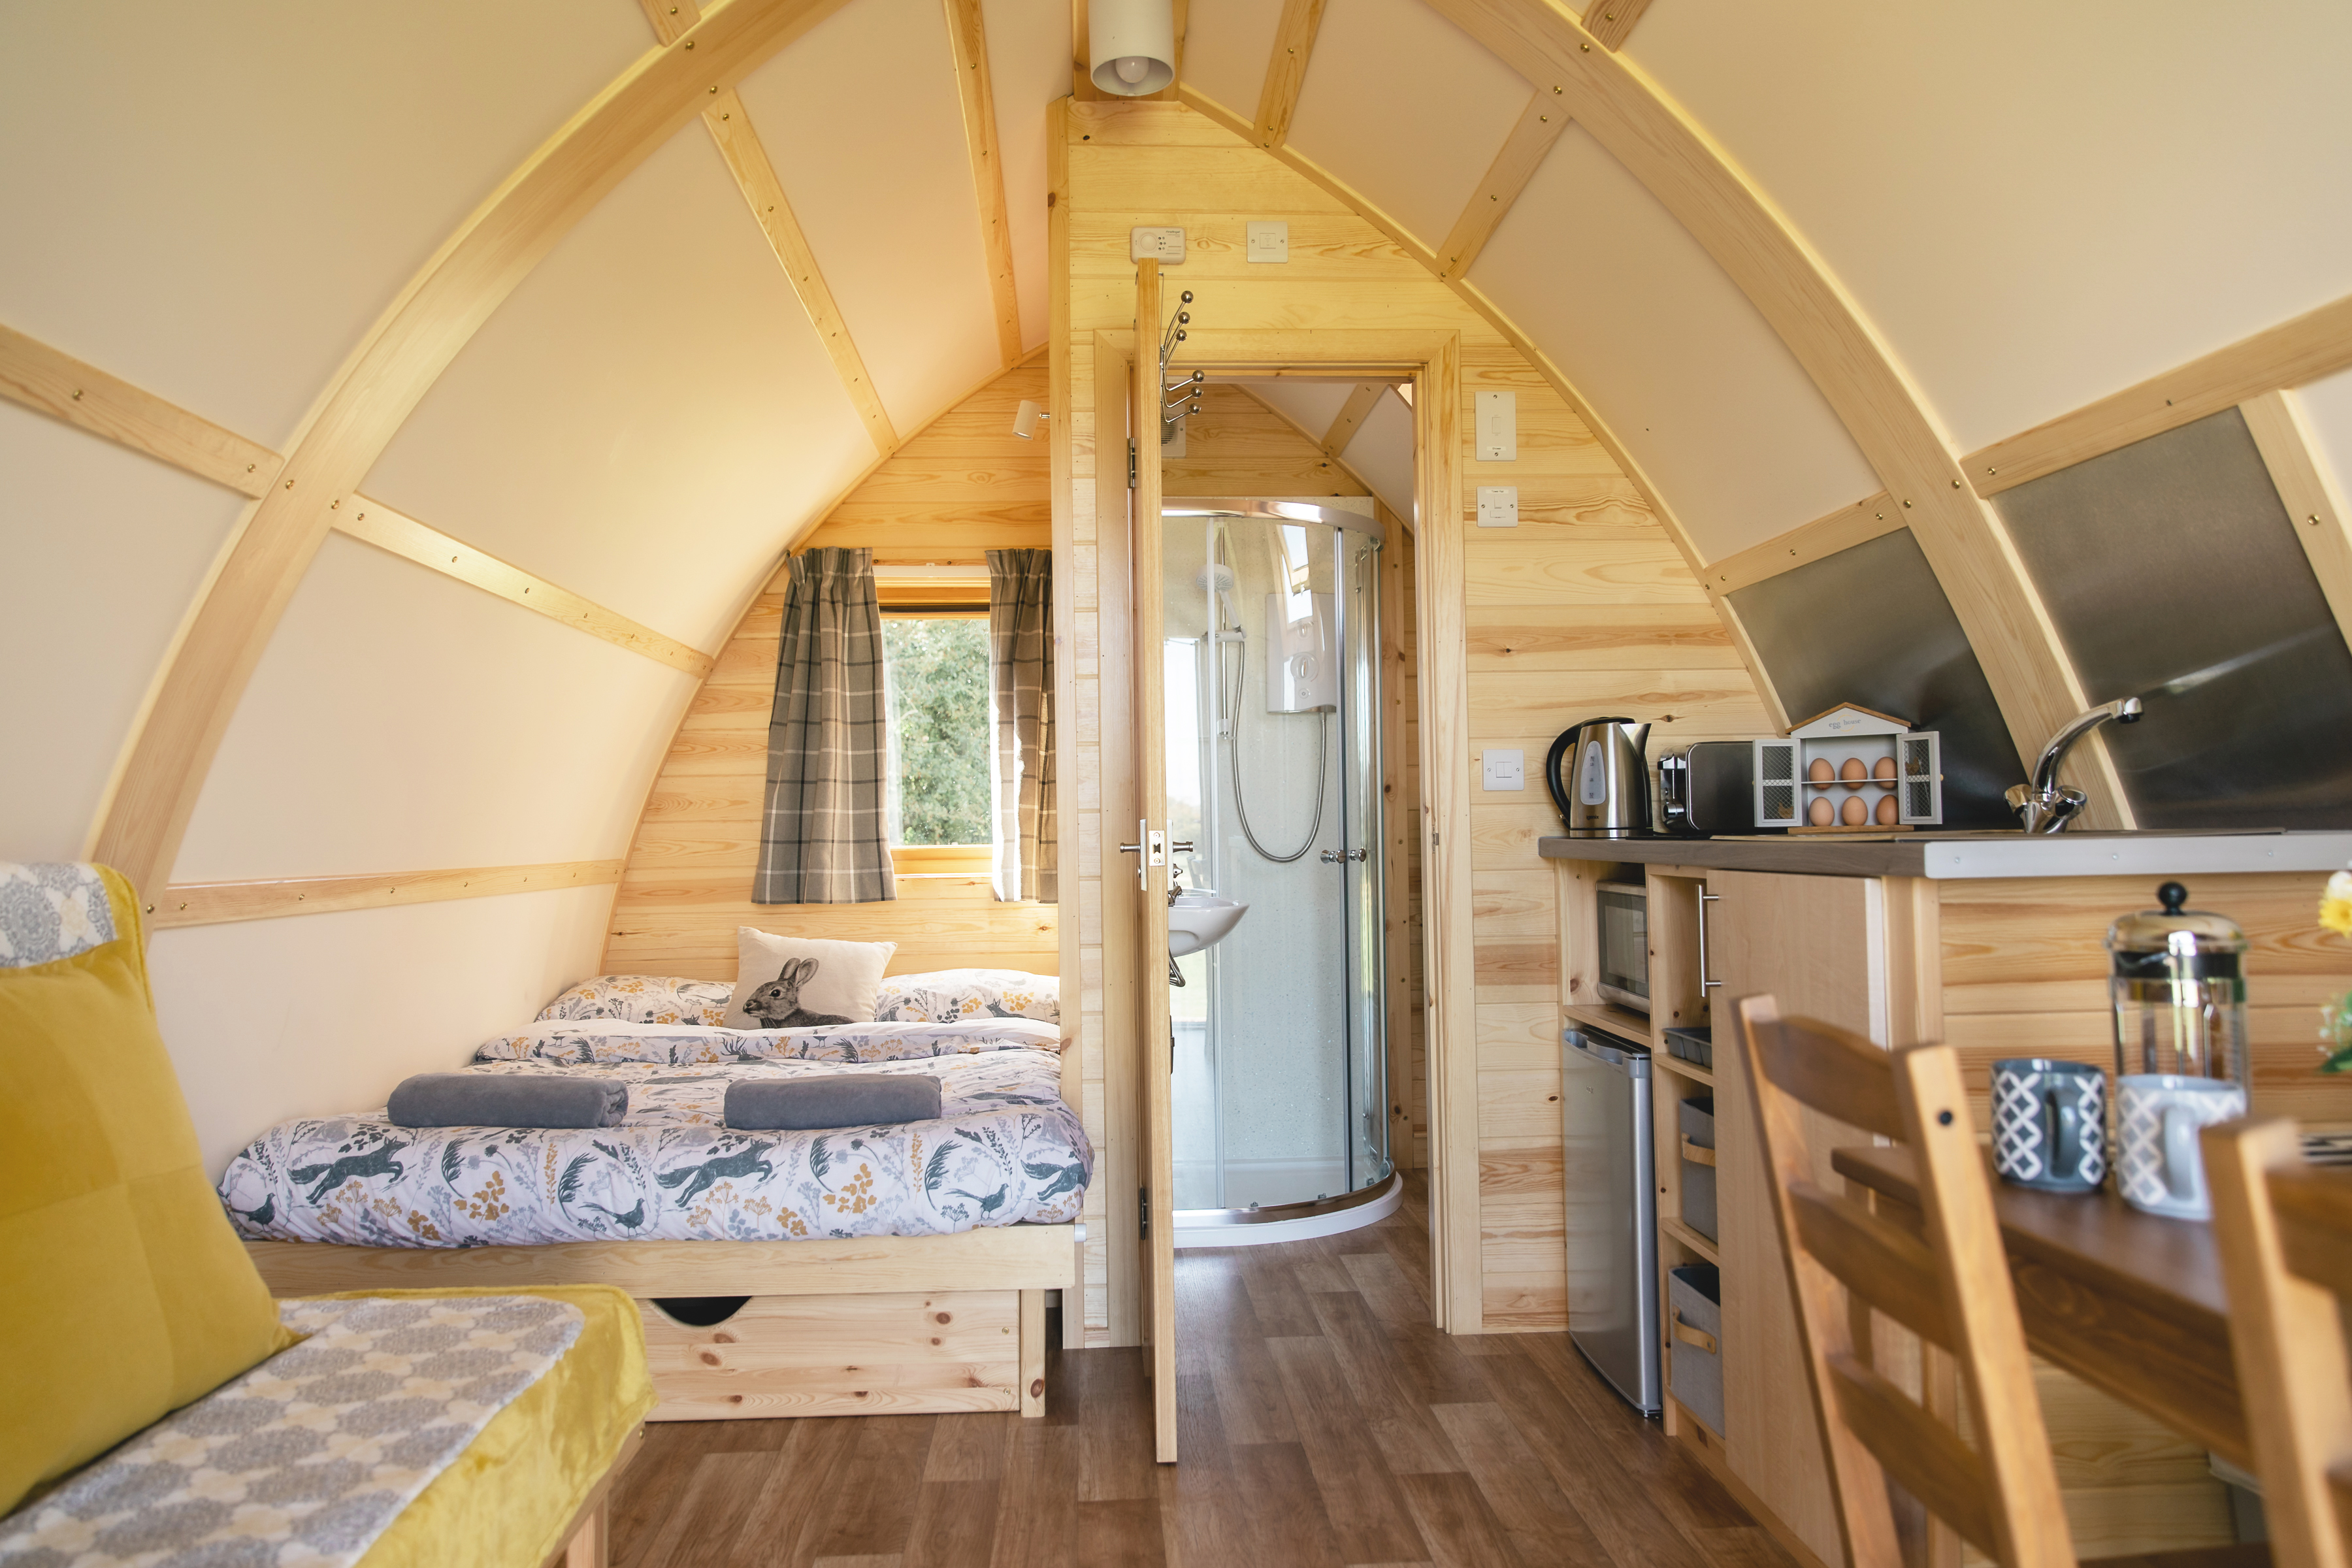 Inside of a running water deluxe cabin